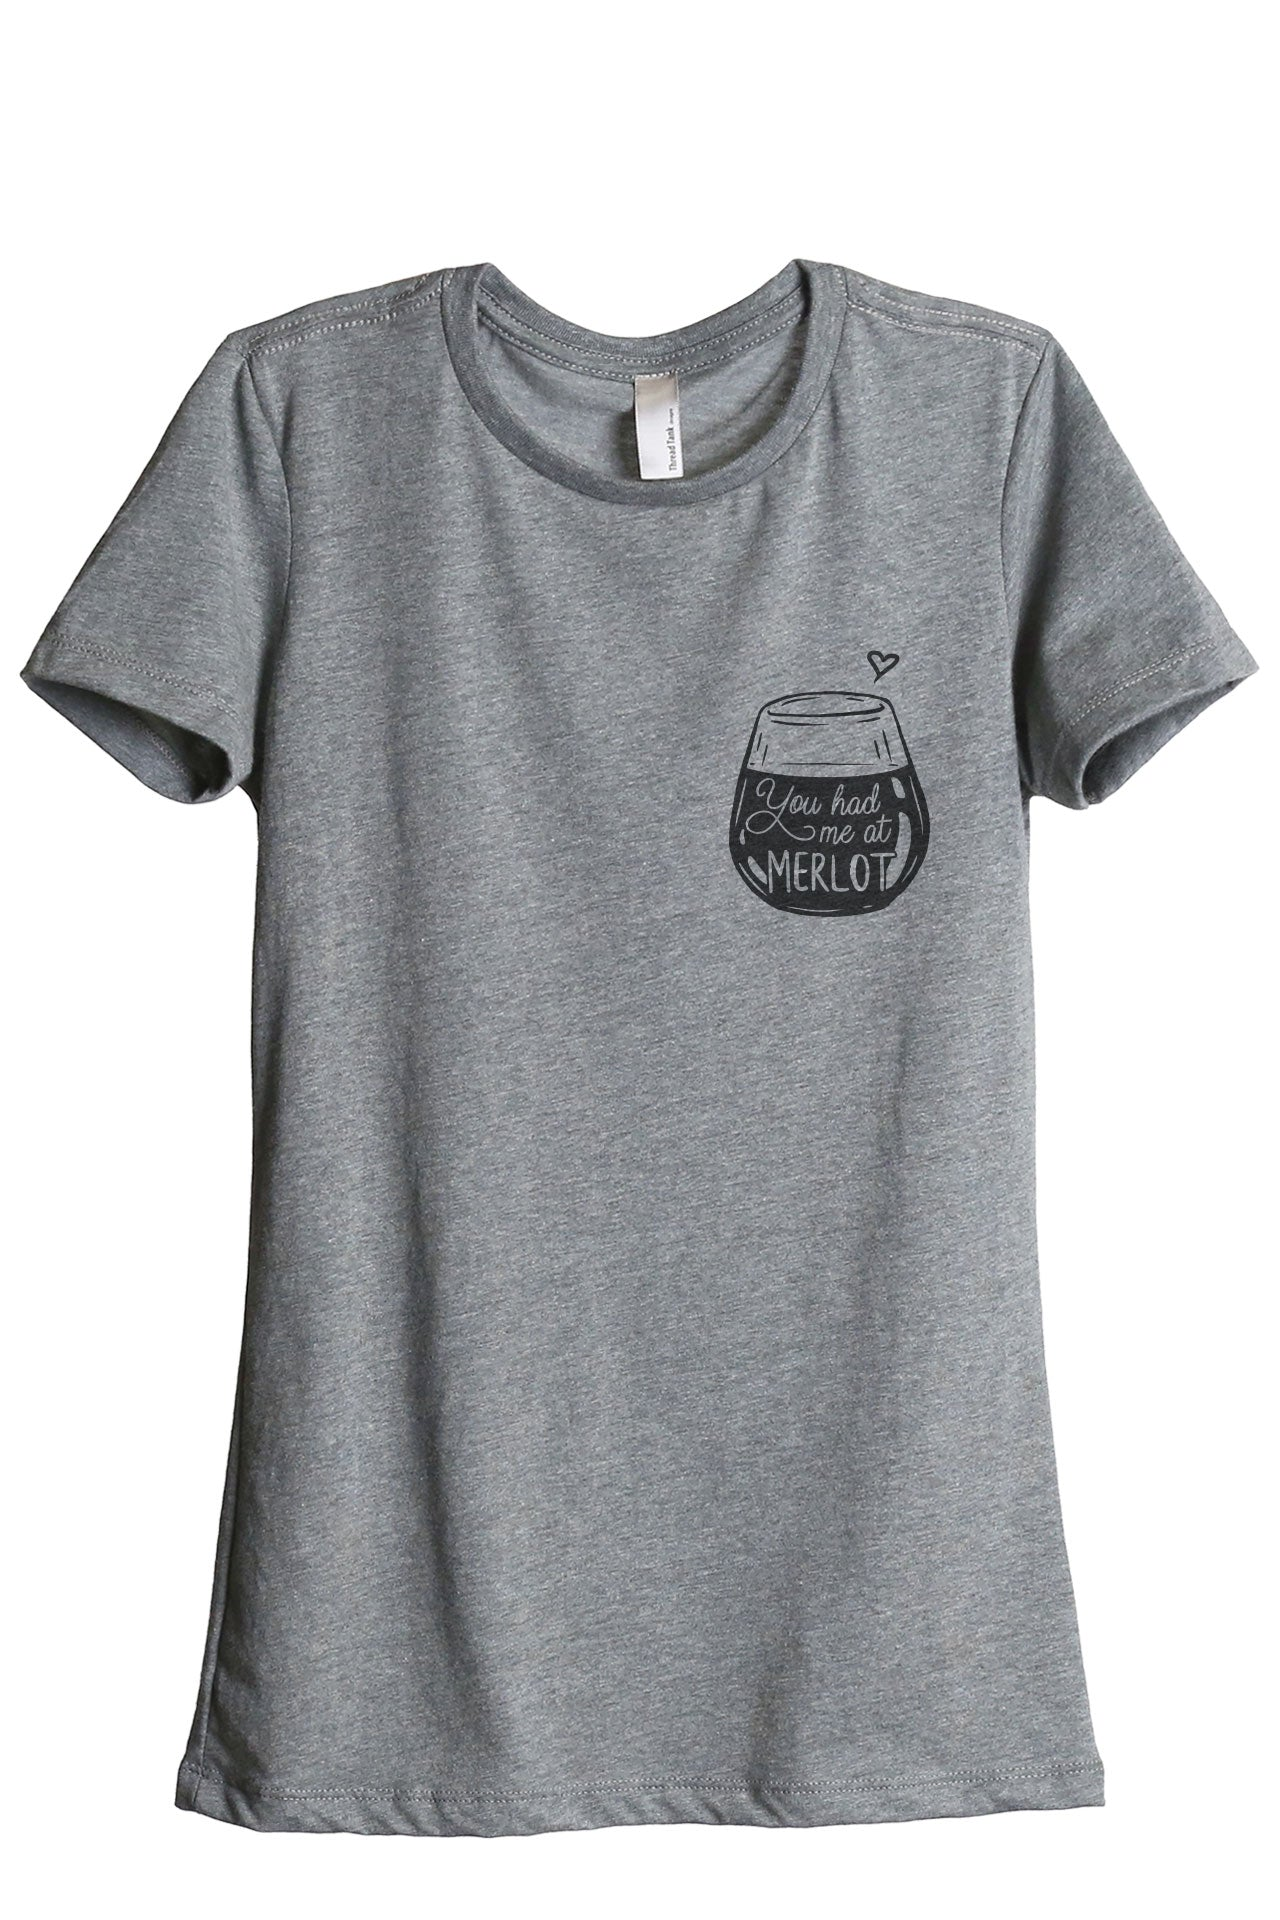 You Had Me At Merlot Women's Relaxed Crewneck T-Shirt Top Tee Heather Grey